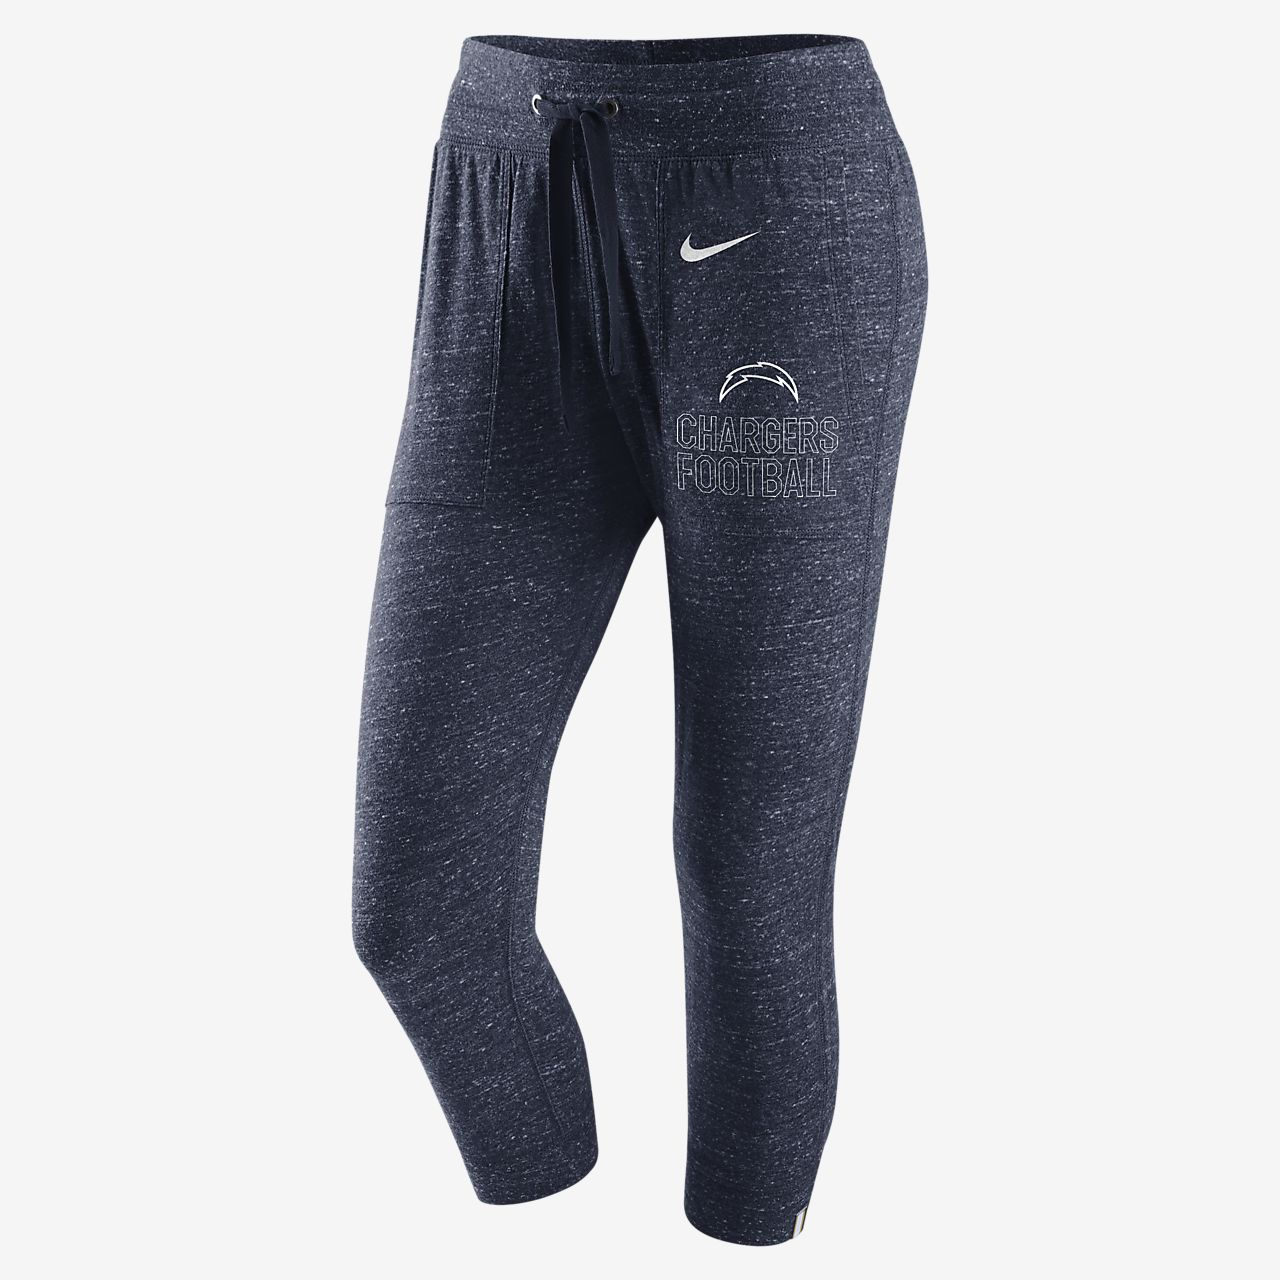 ... Nike Gym Vintage (NFL Chargers) Women's Capris